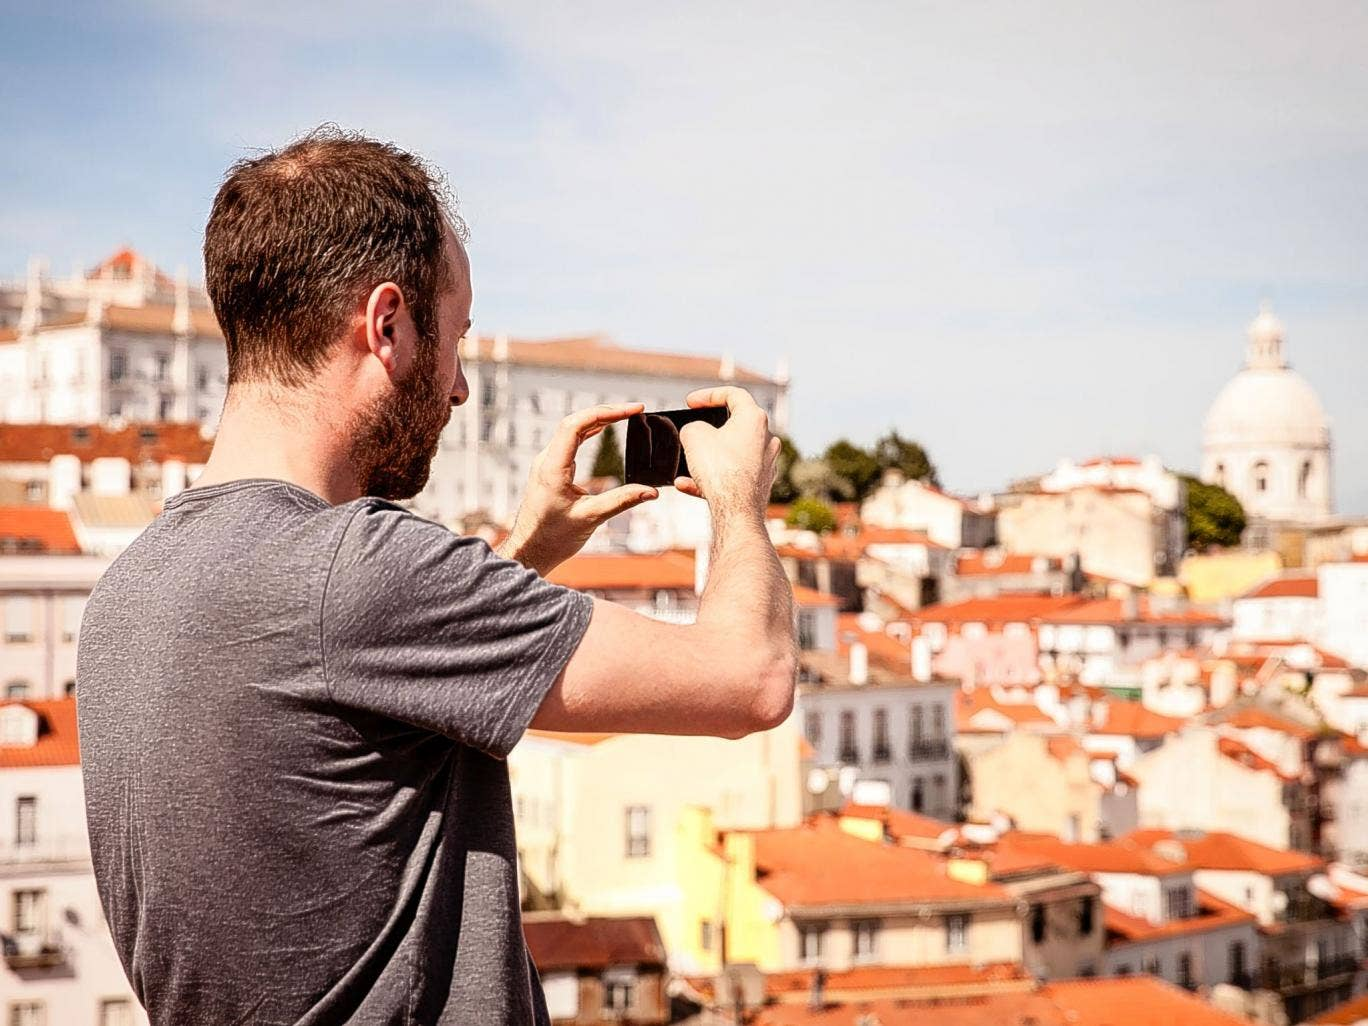 Street view: Simon takes a snap of the Lisbon skyline with a Nexus 5 smartphone